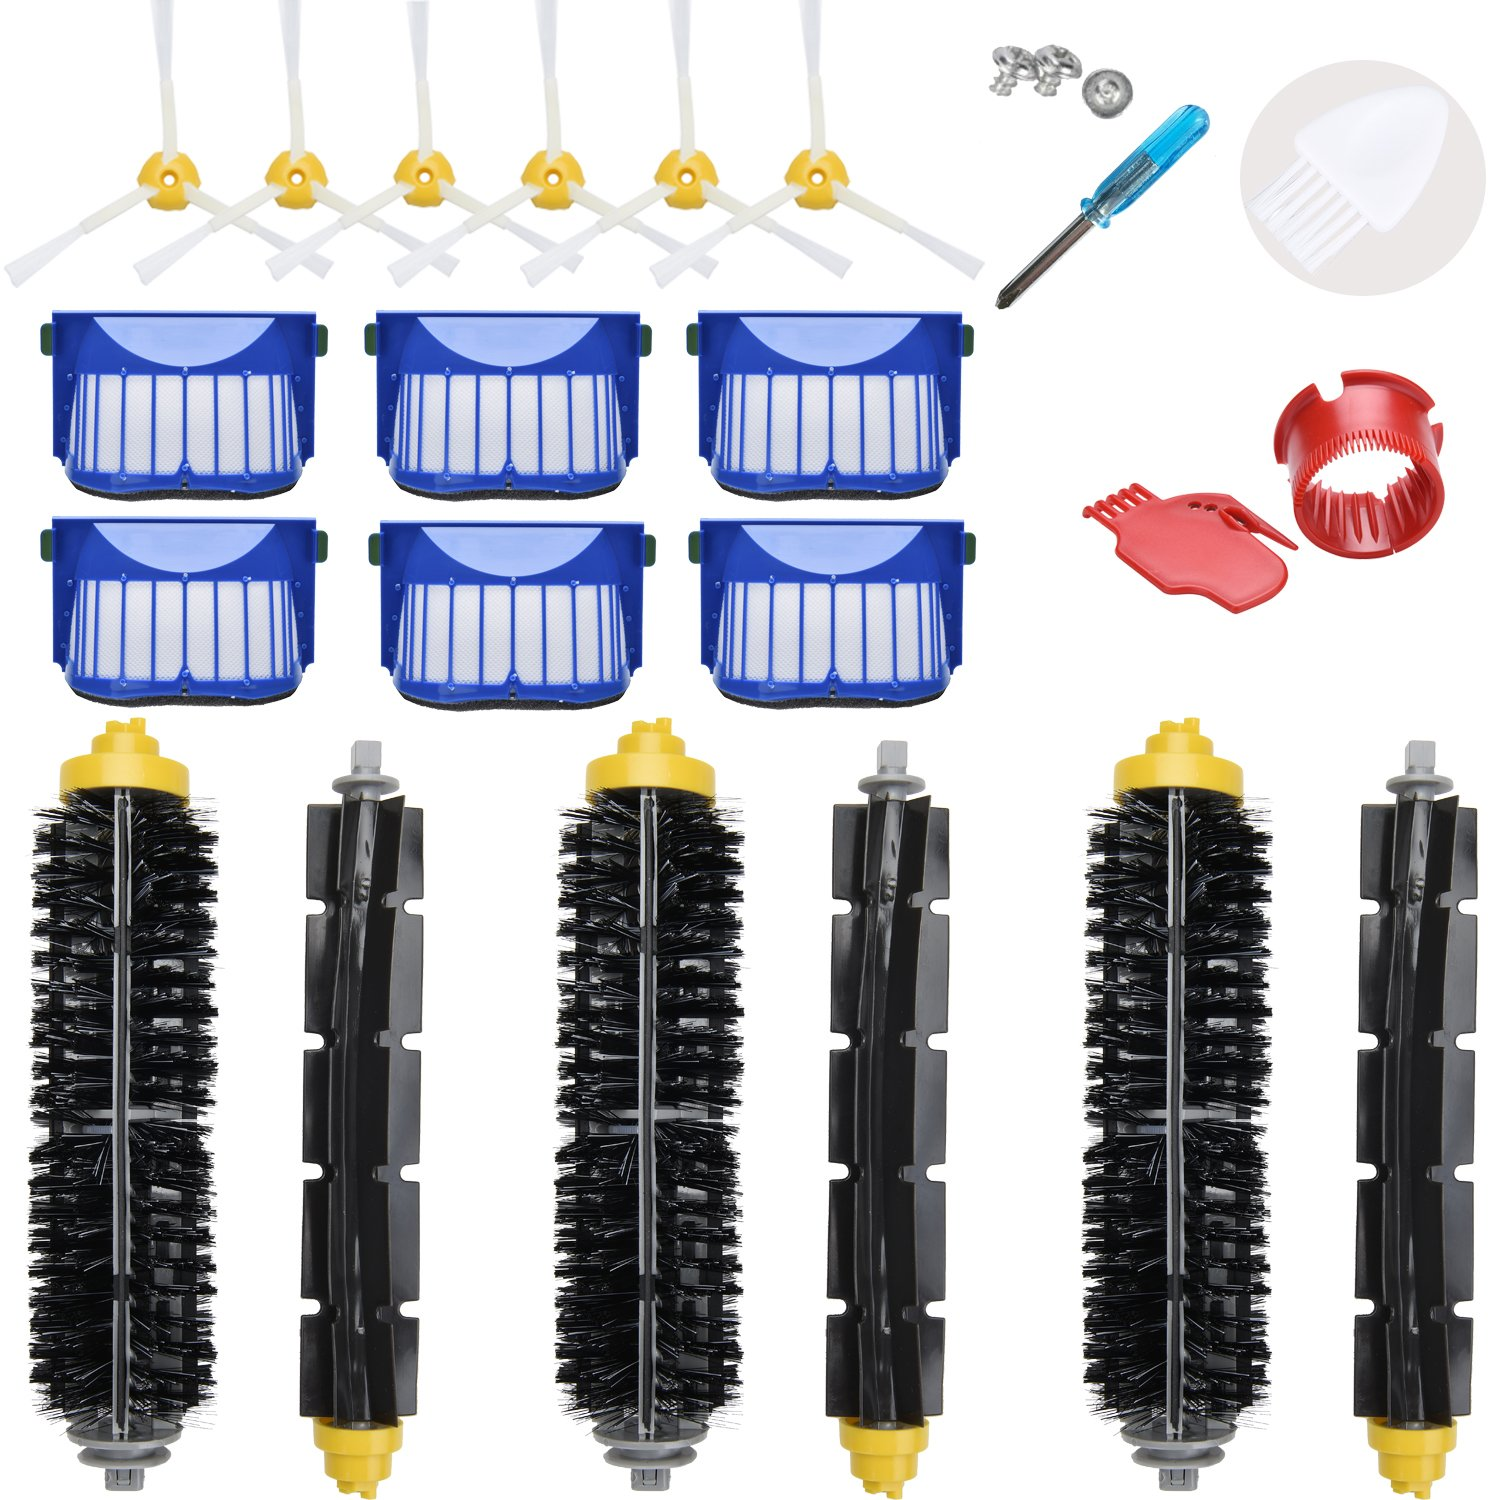 LOVECO Replacement Accessories Kit for iRobot Roomba 600 Series 690 680 660 651 650(Not for 645 655)& 500 Series 595 585 564 552,6 Filter,6 Side Brush,3 Pairs Bristle and Flexible Beater Brush by LOVECO